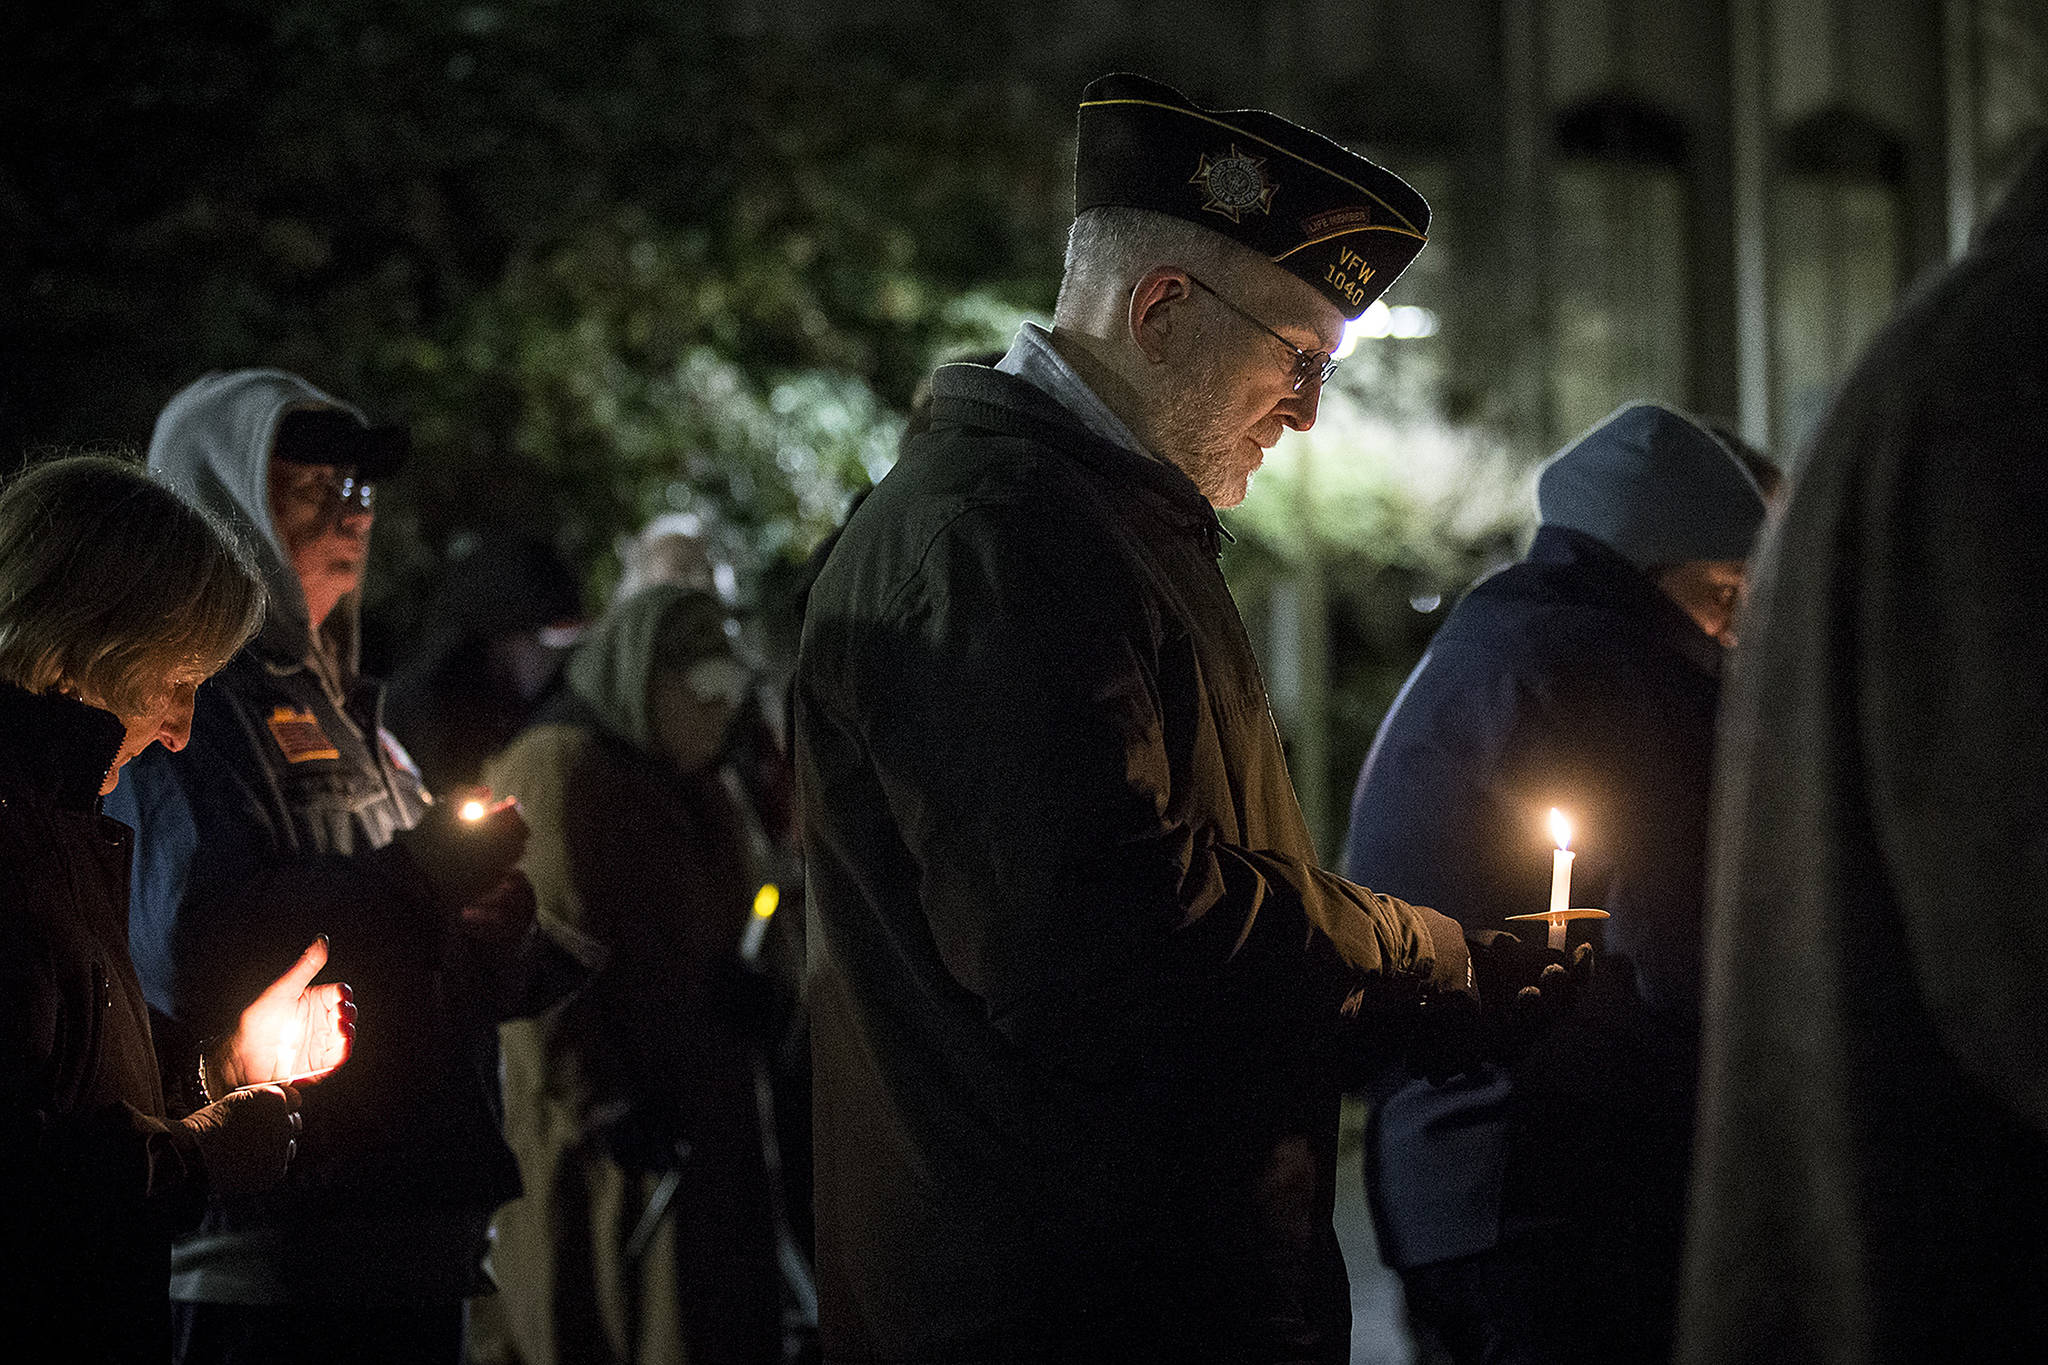 Army veteran Brian Seguin, of Everett, holds a candle at a vigil outside the Snohomish County Courthouse in Everett on Thursday in remembrance of deaths this year within the area's homeless population. The annual vigil had a special emphasis on homeless veterans and the difficulties they face. (Ian Terry / The Herald)